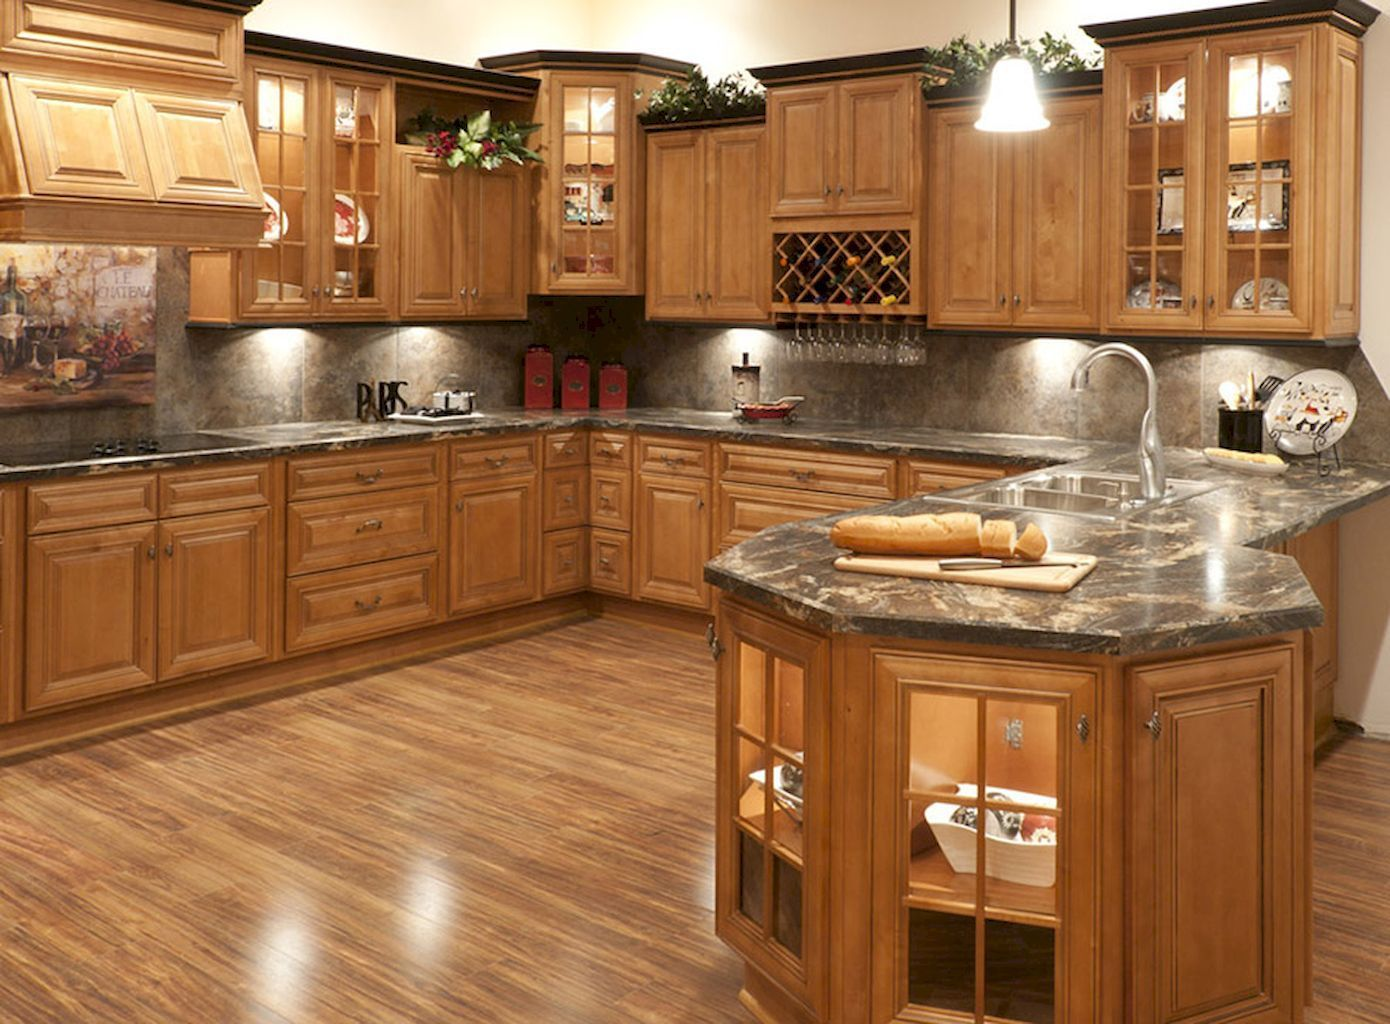 Kitchencabinetpicturesimages Rta Kitchen Cabinets